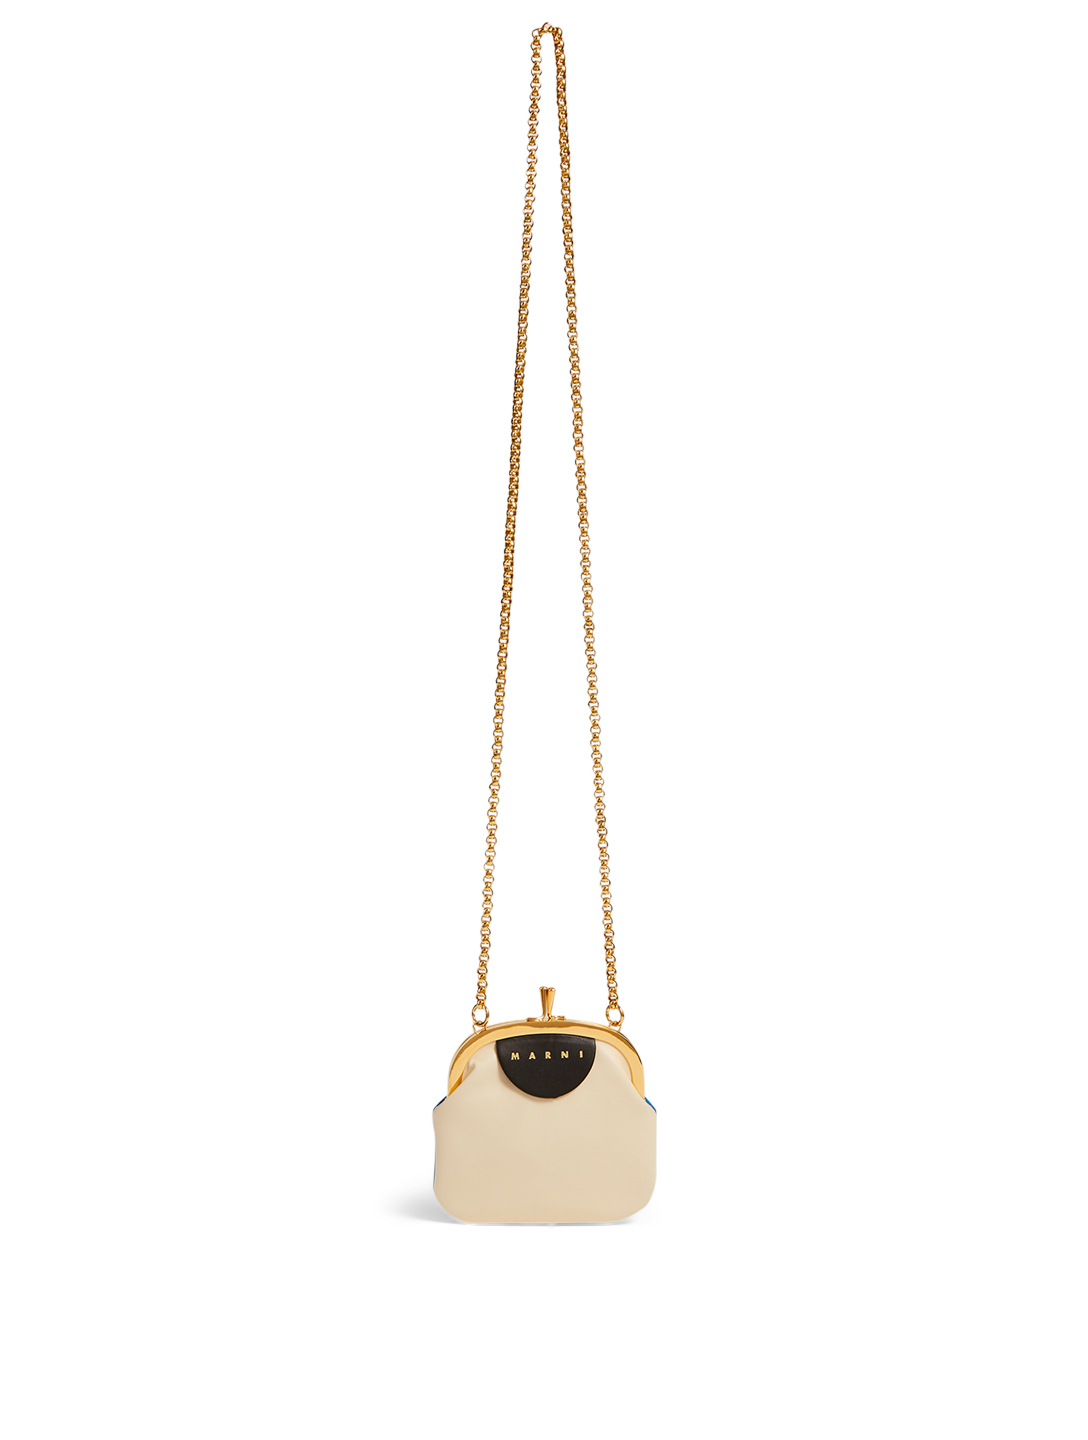 MARNI Frame Leather Chain Pouch Bag Women's White